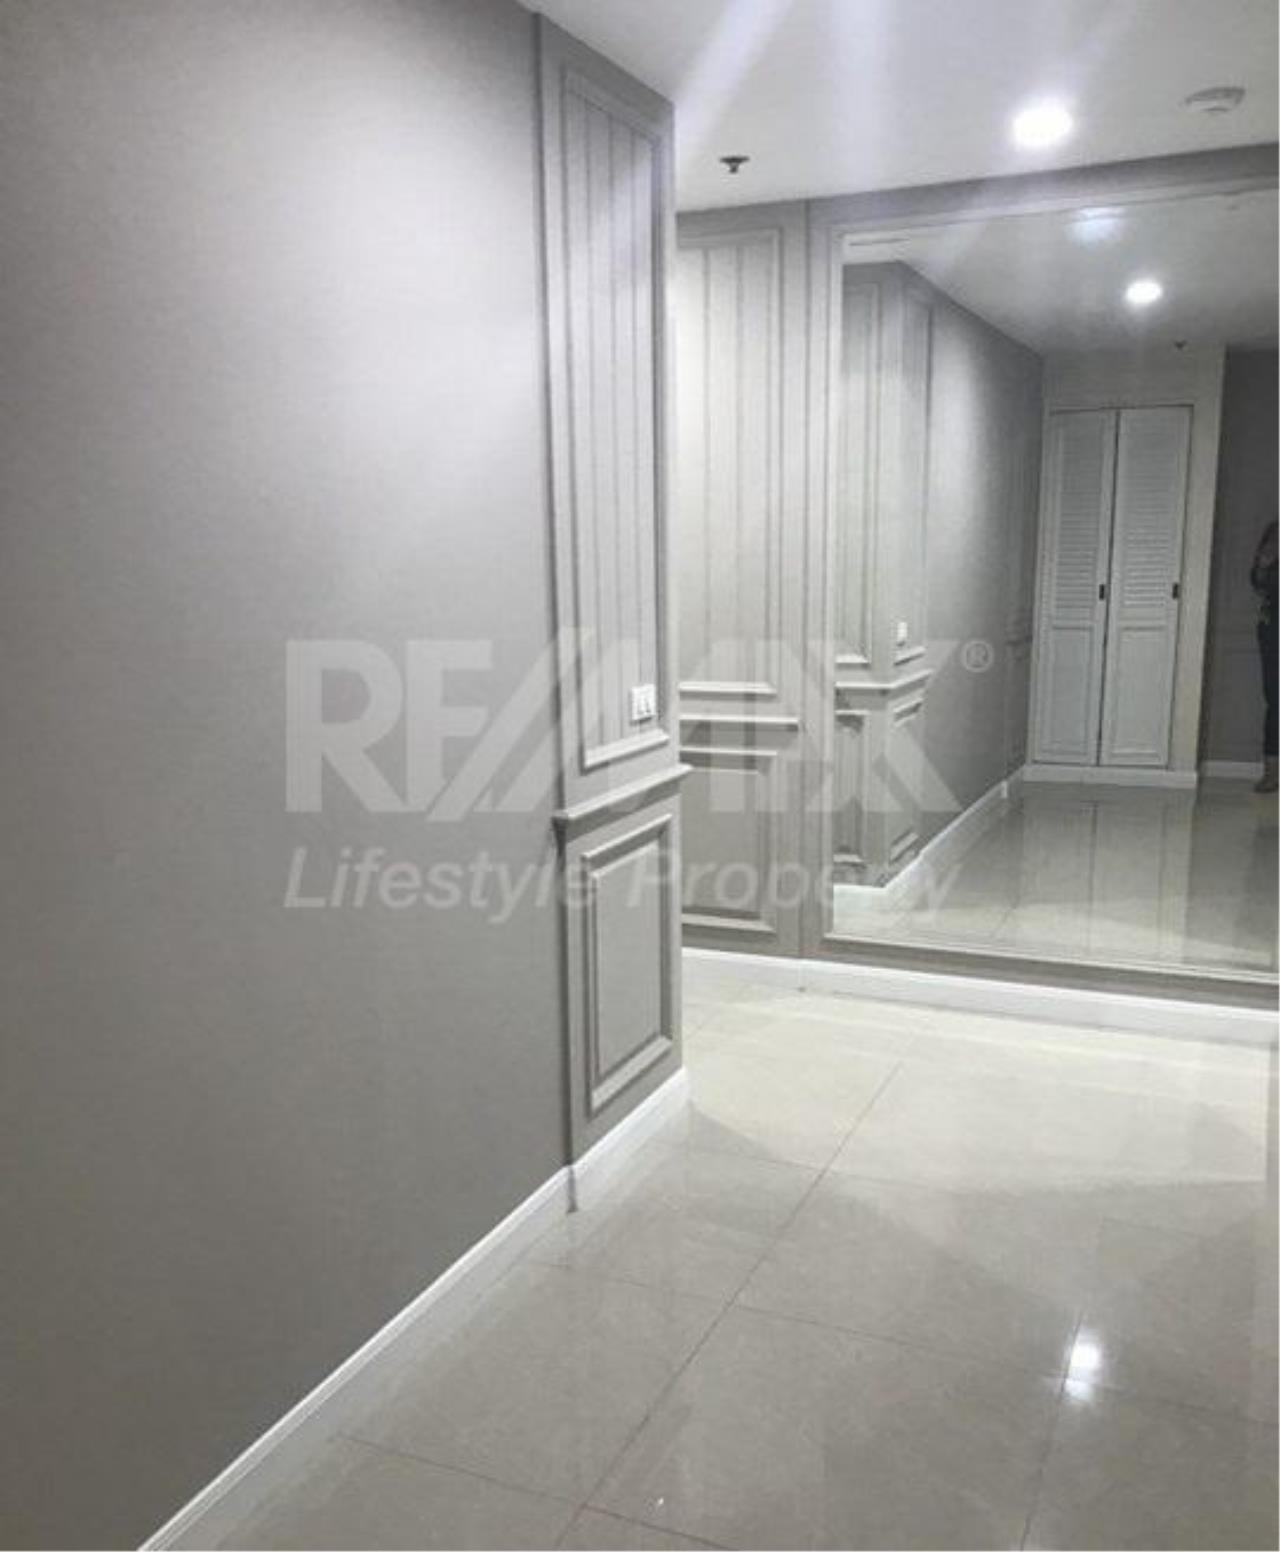 RE/MAX LifeStyle Property Agency's Langsuan Ville 6